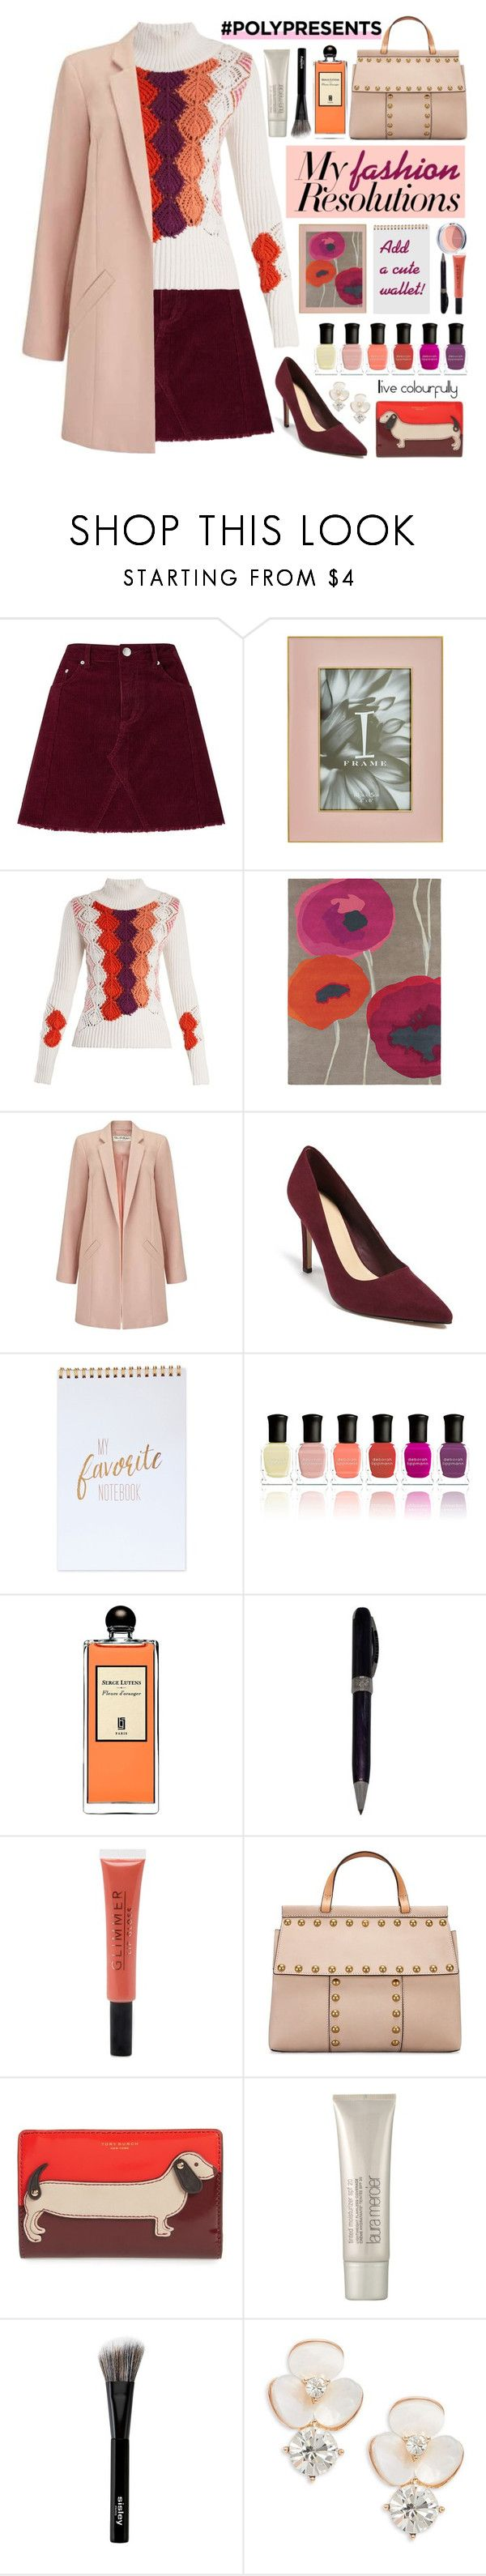 """""""#PolyPresents: New Year's Fashion Resolutions"""" by sunx2 ❤ liked on Polyvore featuring Miss Selfridge, Peter Pilotto, SANDERSON, Forever 21, Deborah Lippmann, Serge Lutens, Visconti, Tory Burch, Laura Mercier and Sisley"""